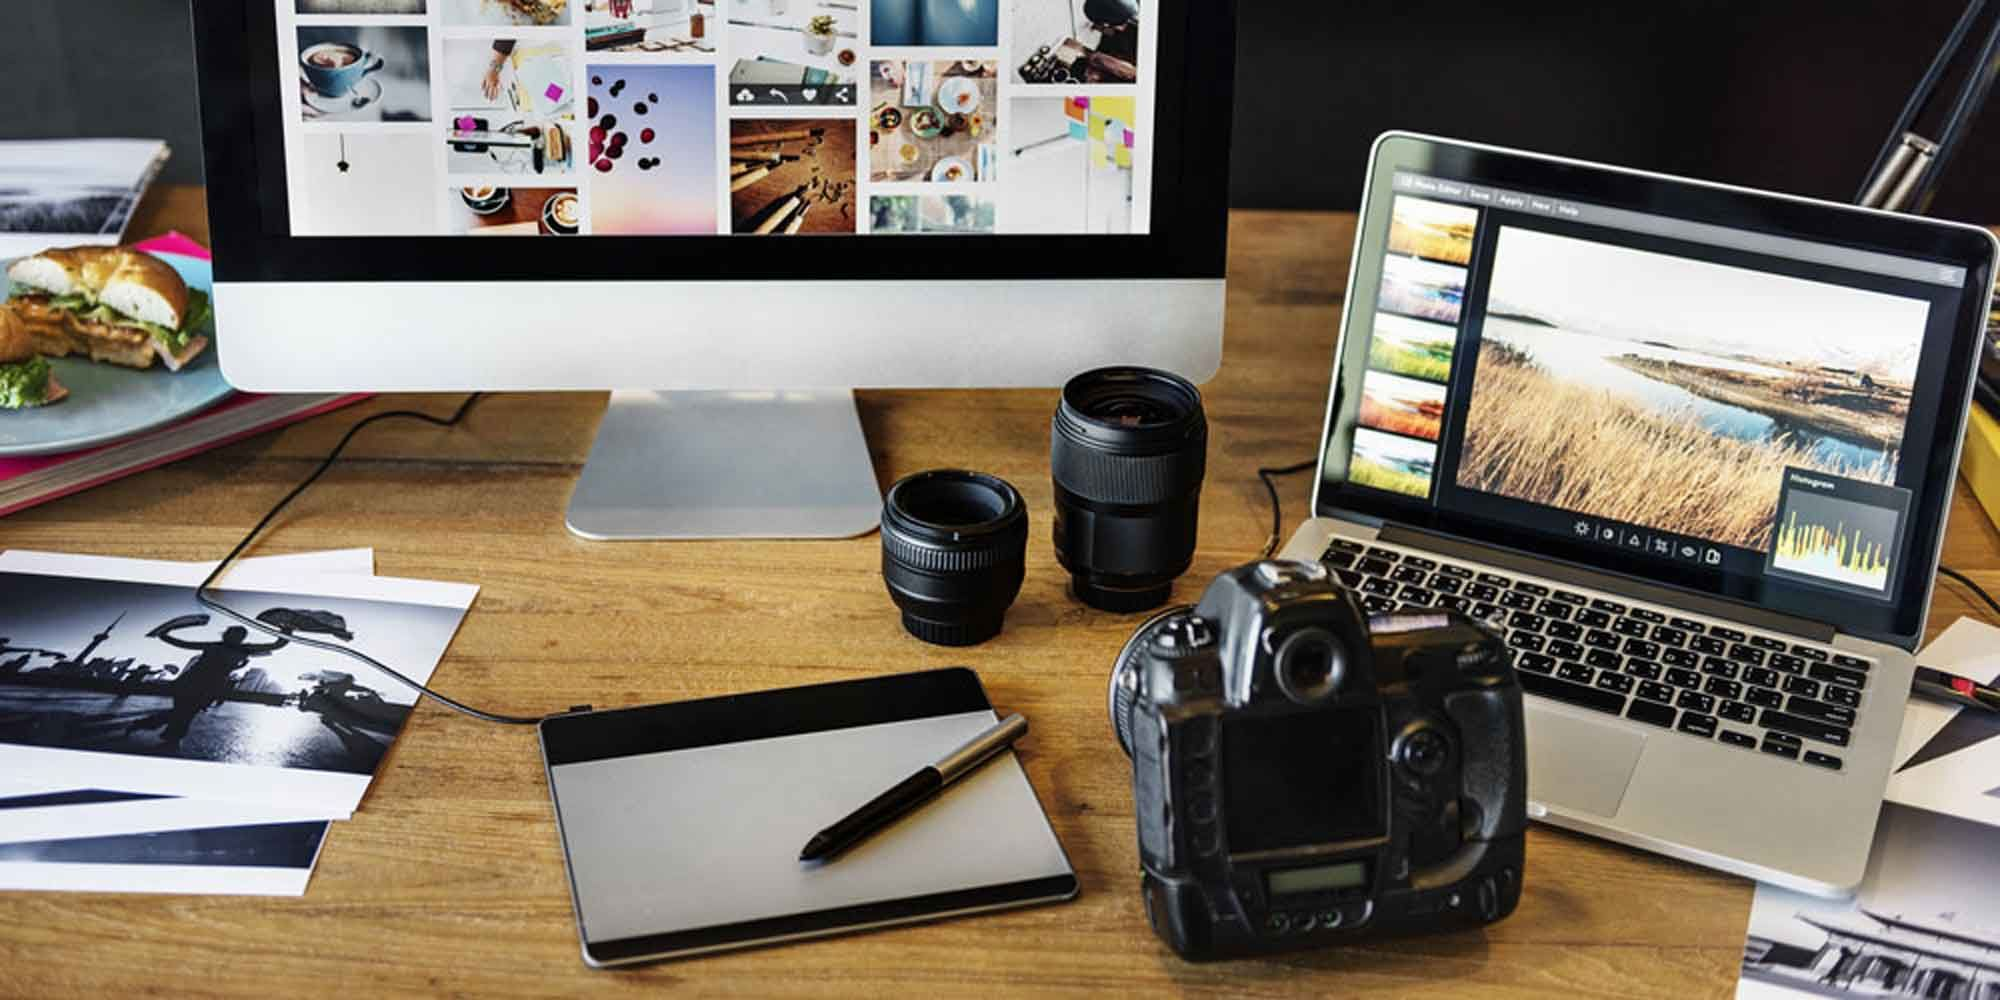 How to edit your photos 5 editing steps for